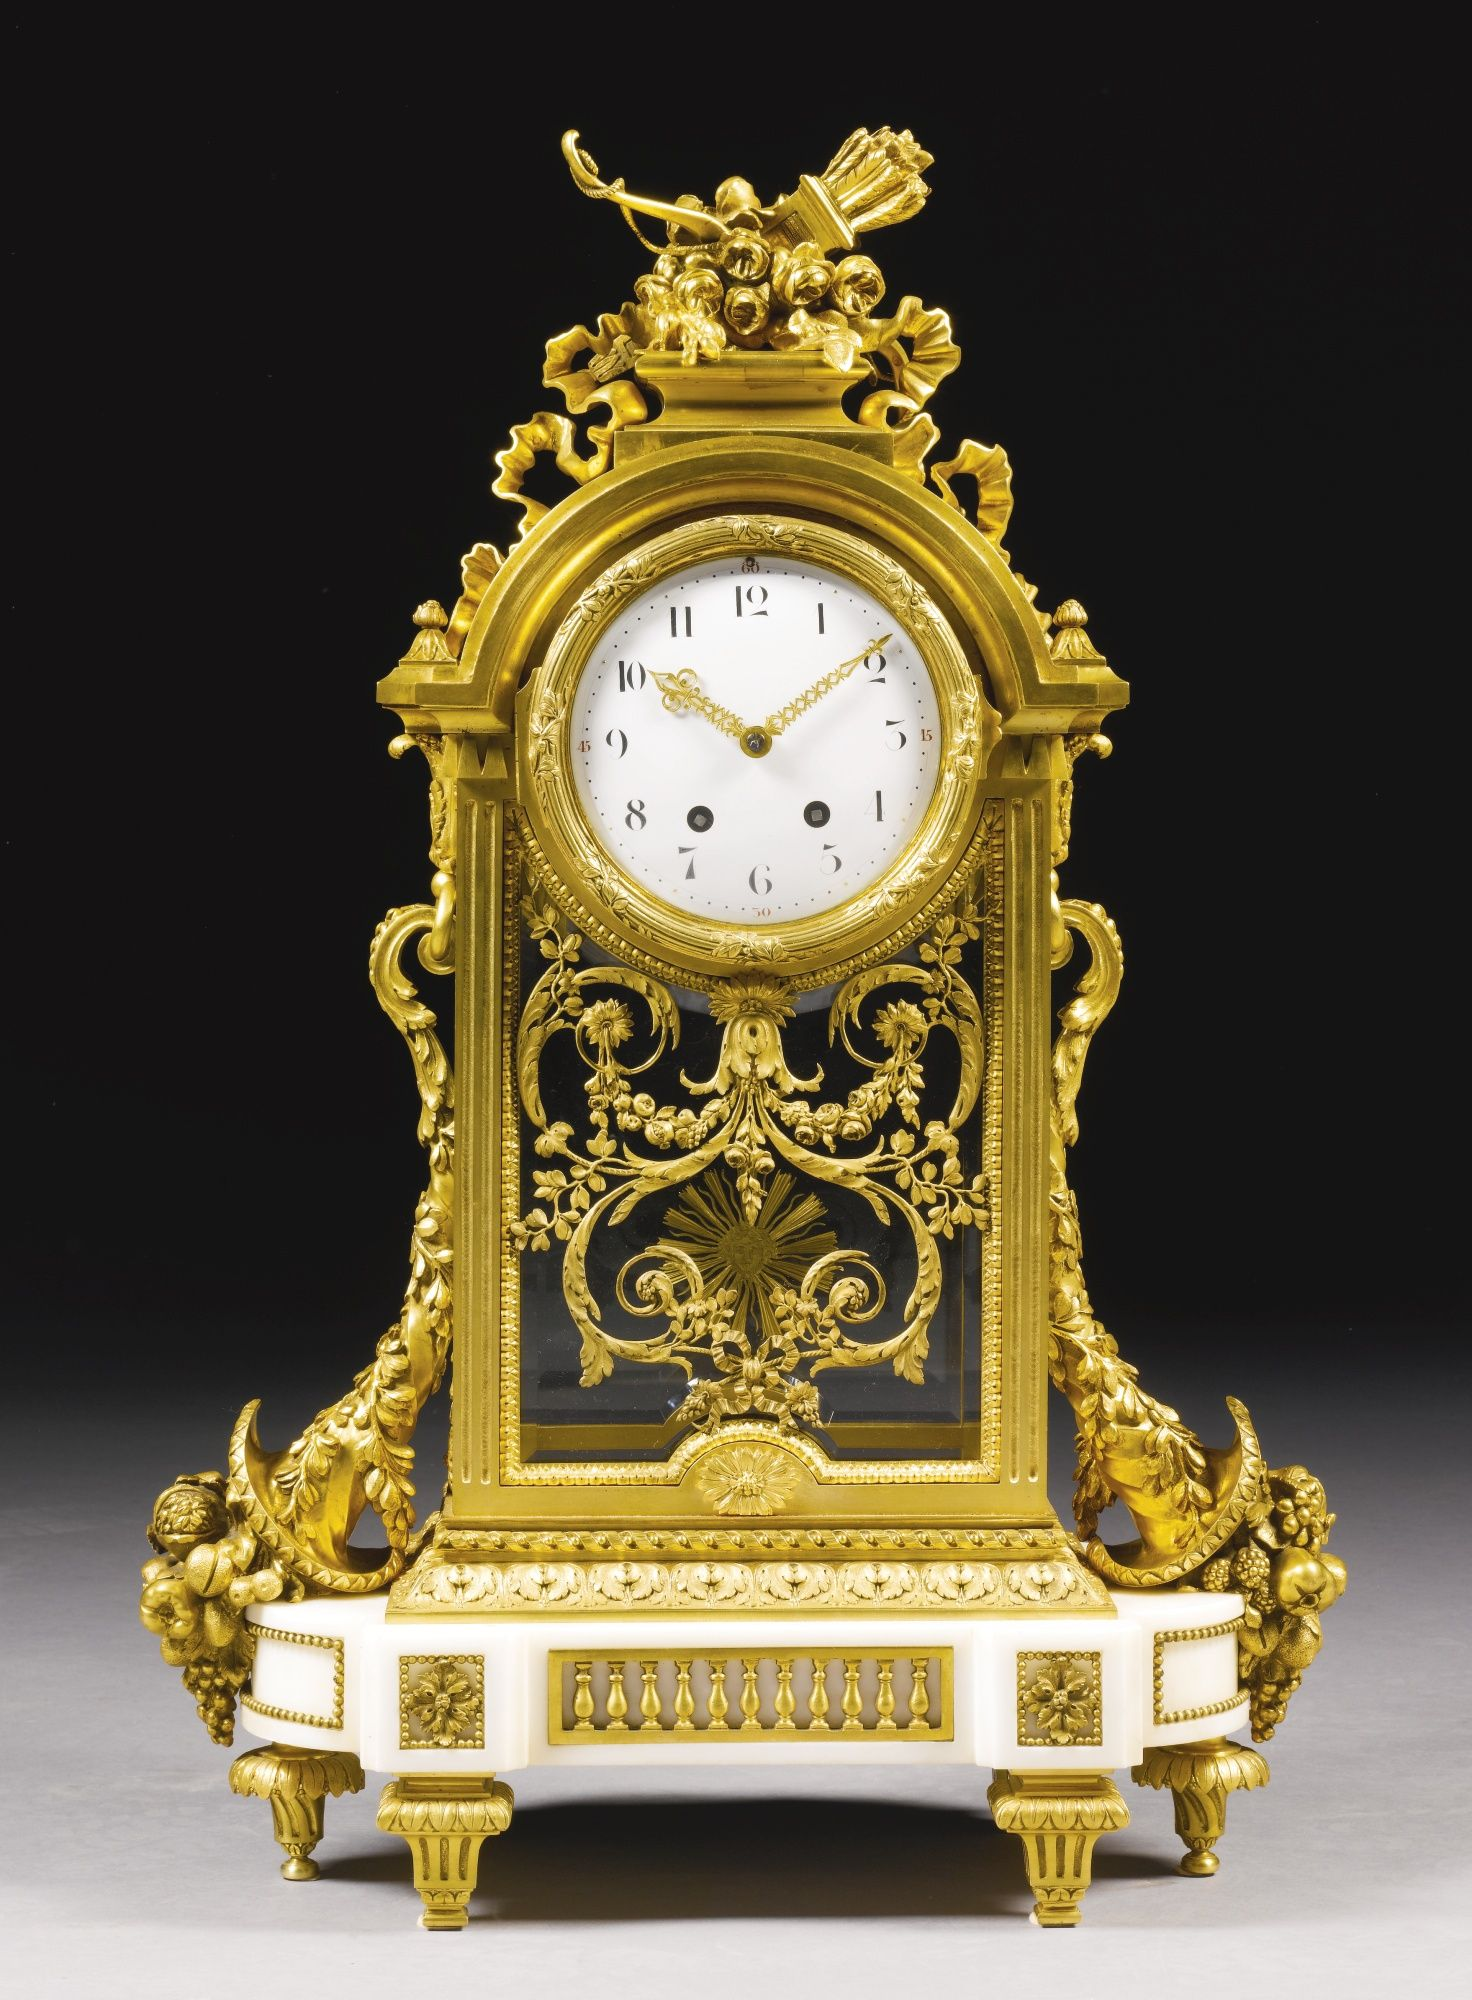 A Large Gilt Bronze And White Marble Mantel Clock French Circa 1890 Lot Sotheby S Antique Clocks Classic Clocks Antique Wall Clocks